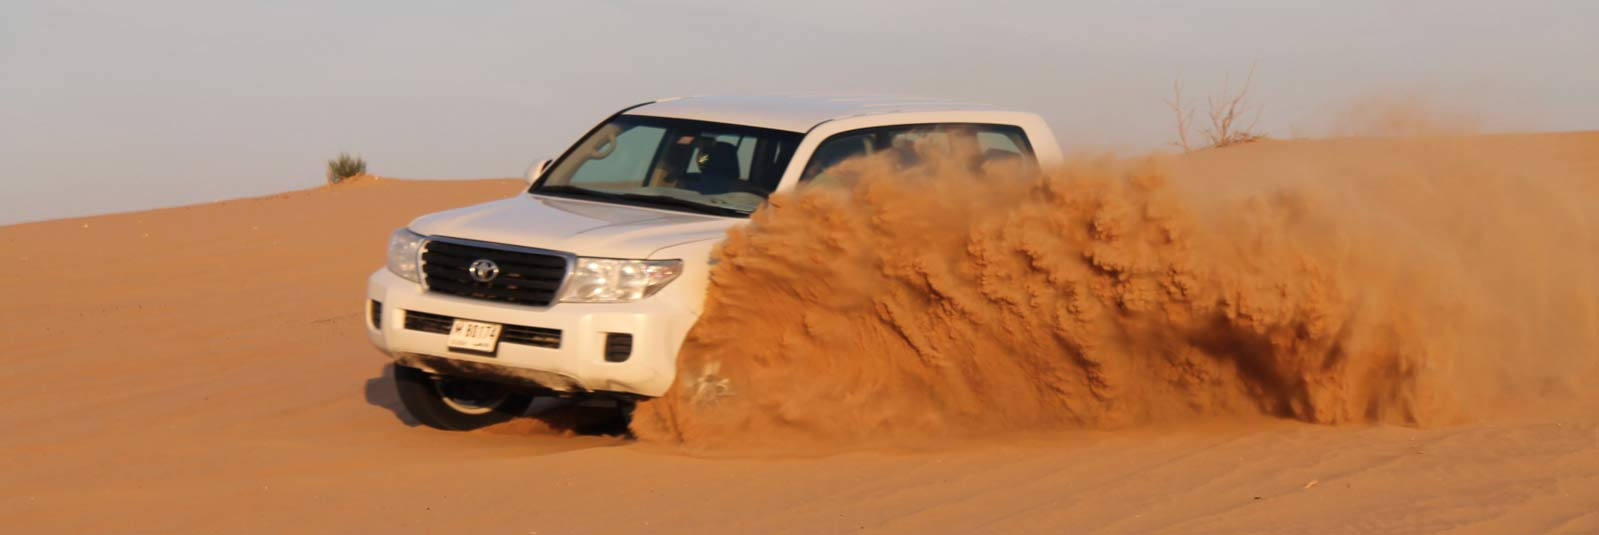 How To Bring Wonders in Your Trip By Enjoying Dune Bashing